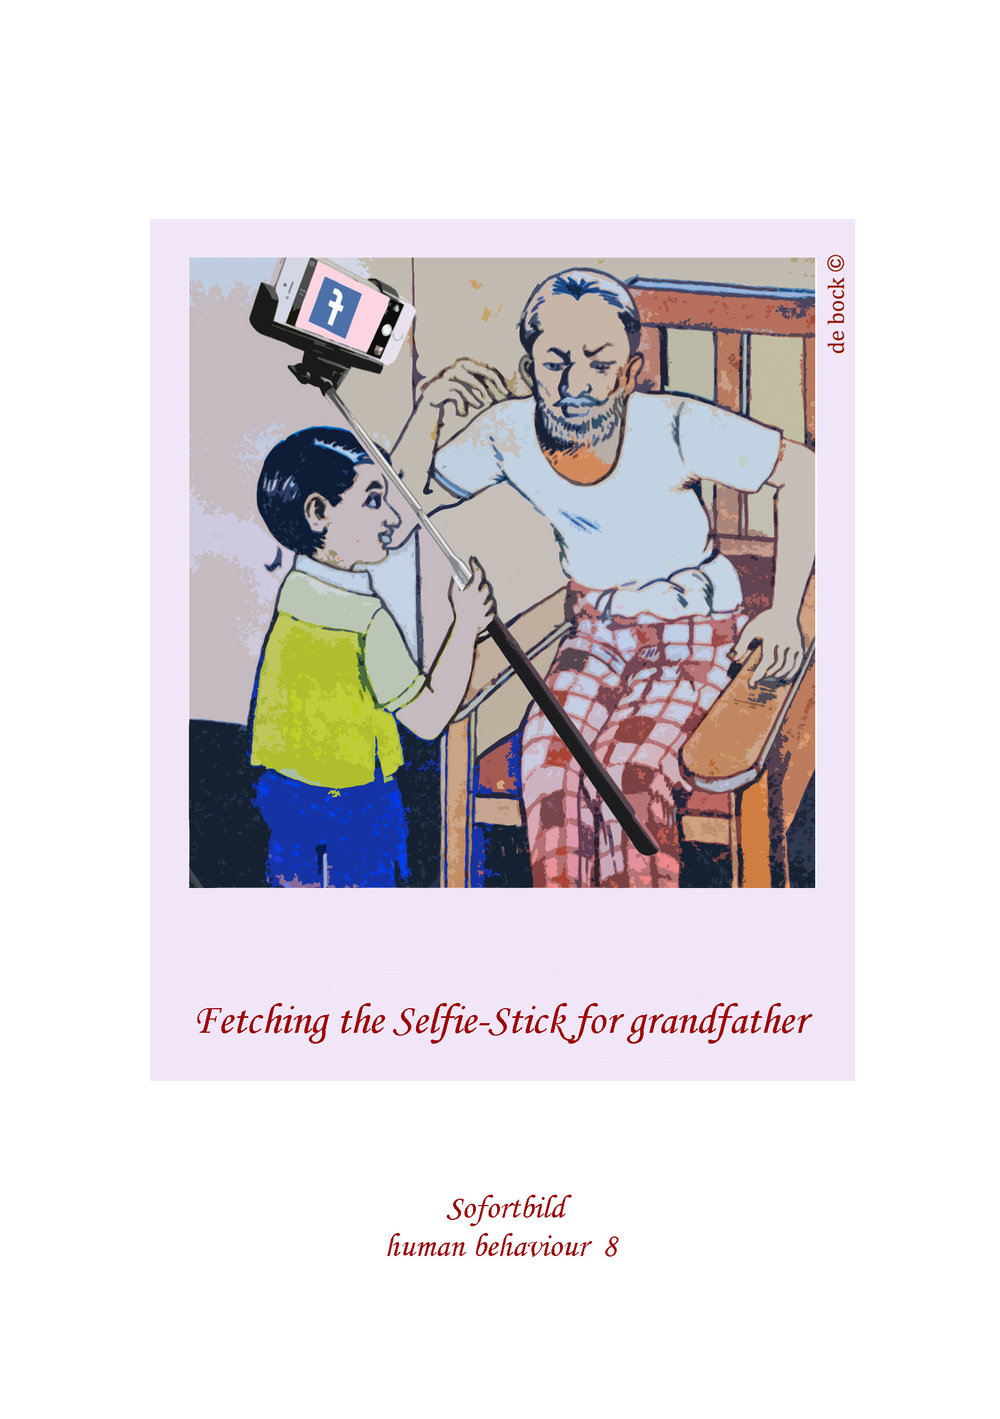 8_-Fetchinf-the-Selfie-Stick-for-grandfather.jpg